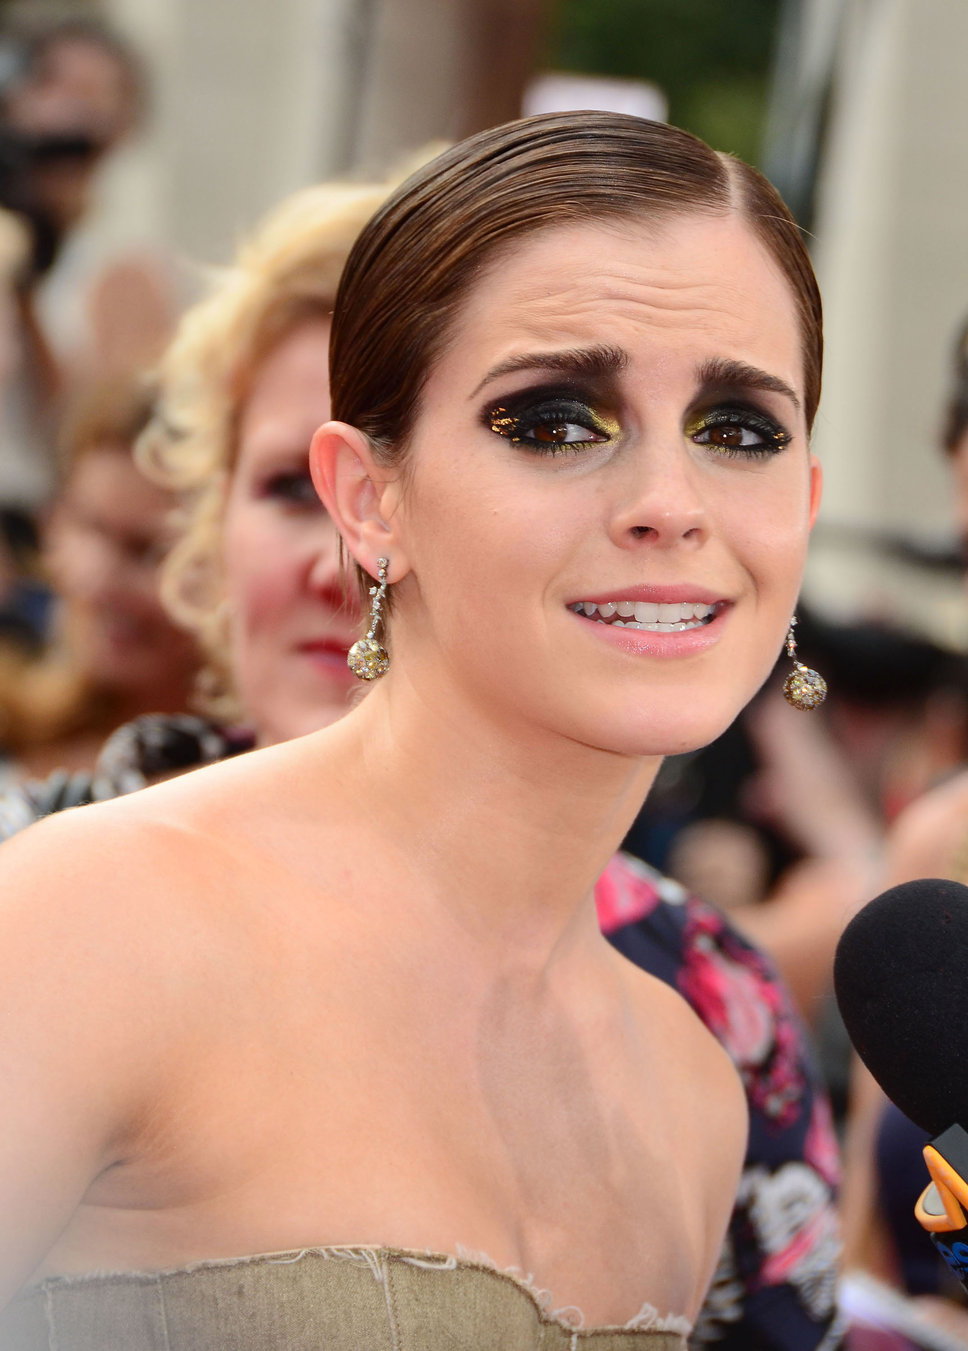 Emma Watson bad makeup photo | Posh24